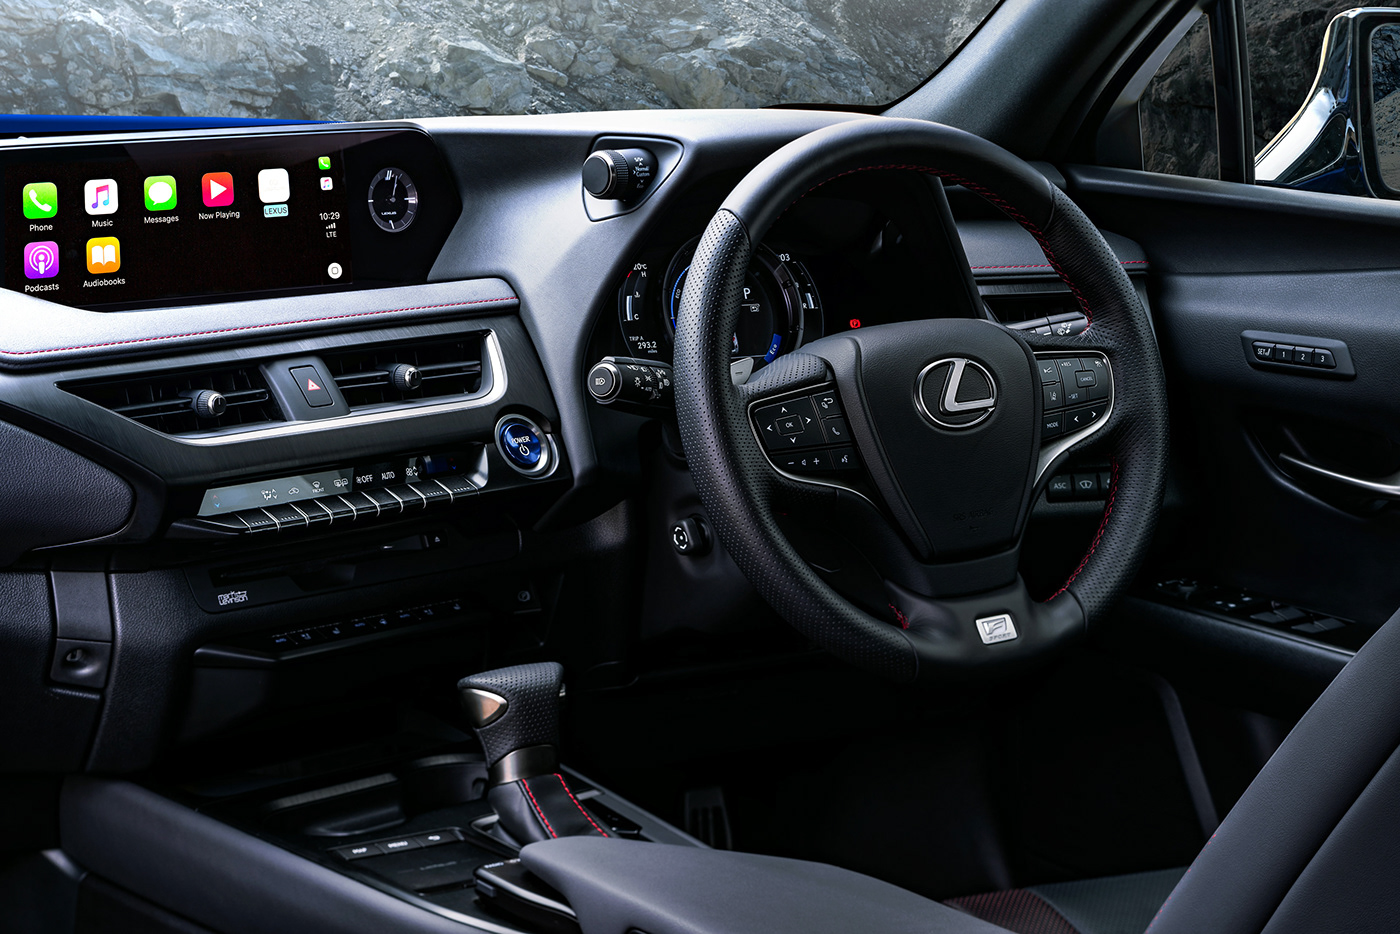 Lexus UX Hybrid car photography by Dean Wright Automotive. Lexus UX Car interior